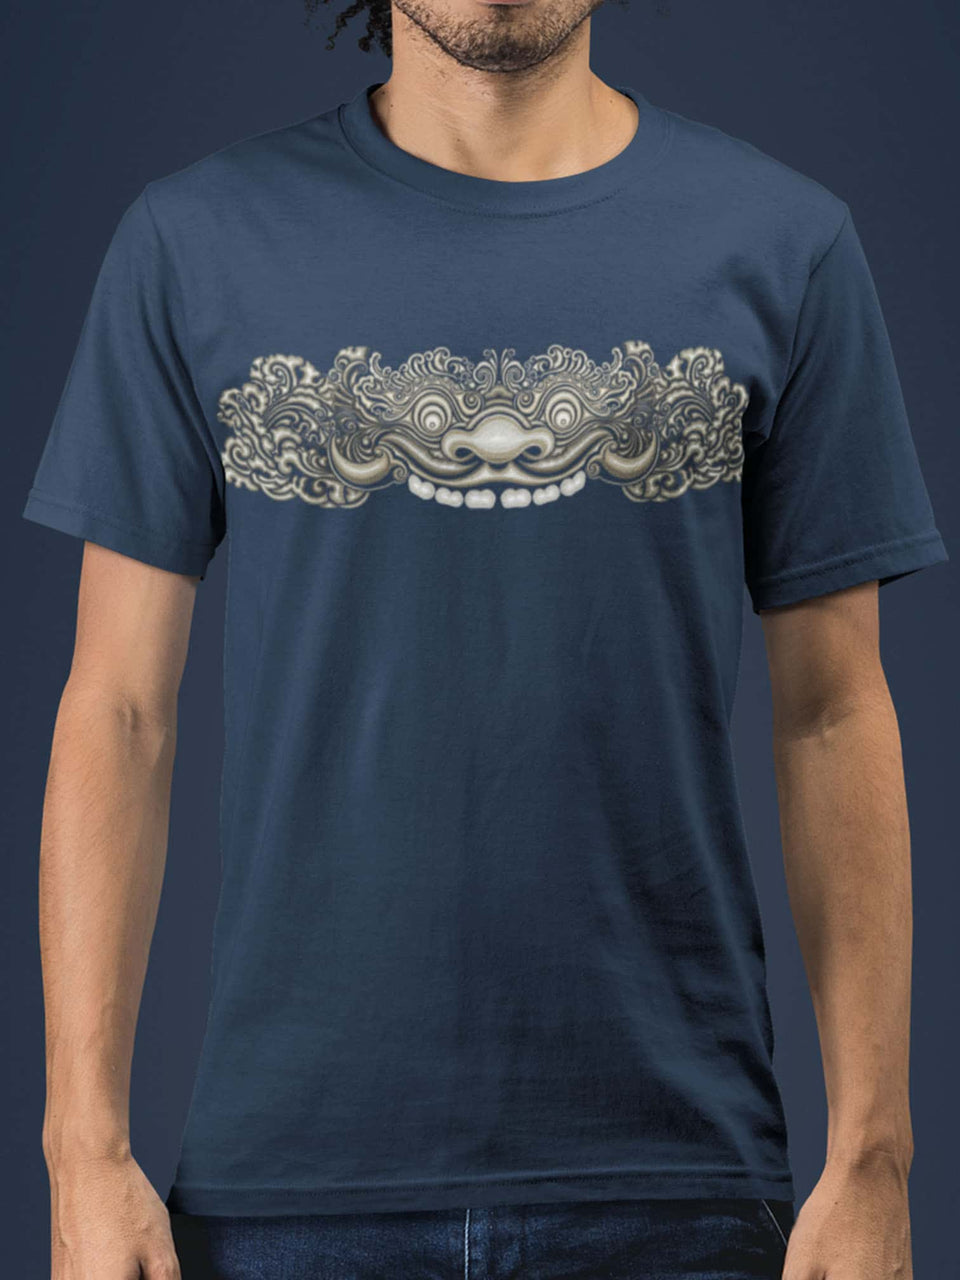 Bhoma Made To Order Men T-Shirt - Navy Blue